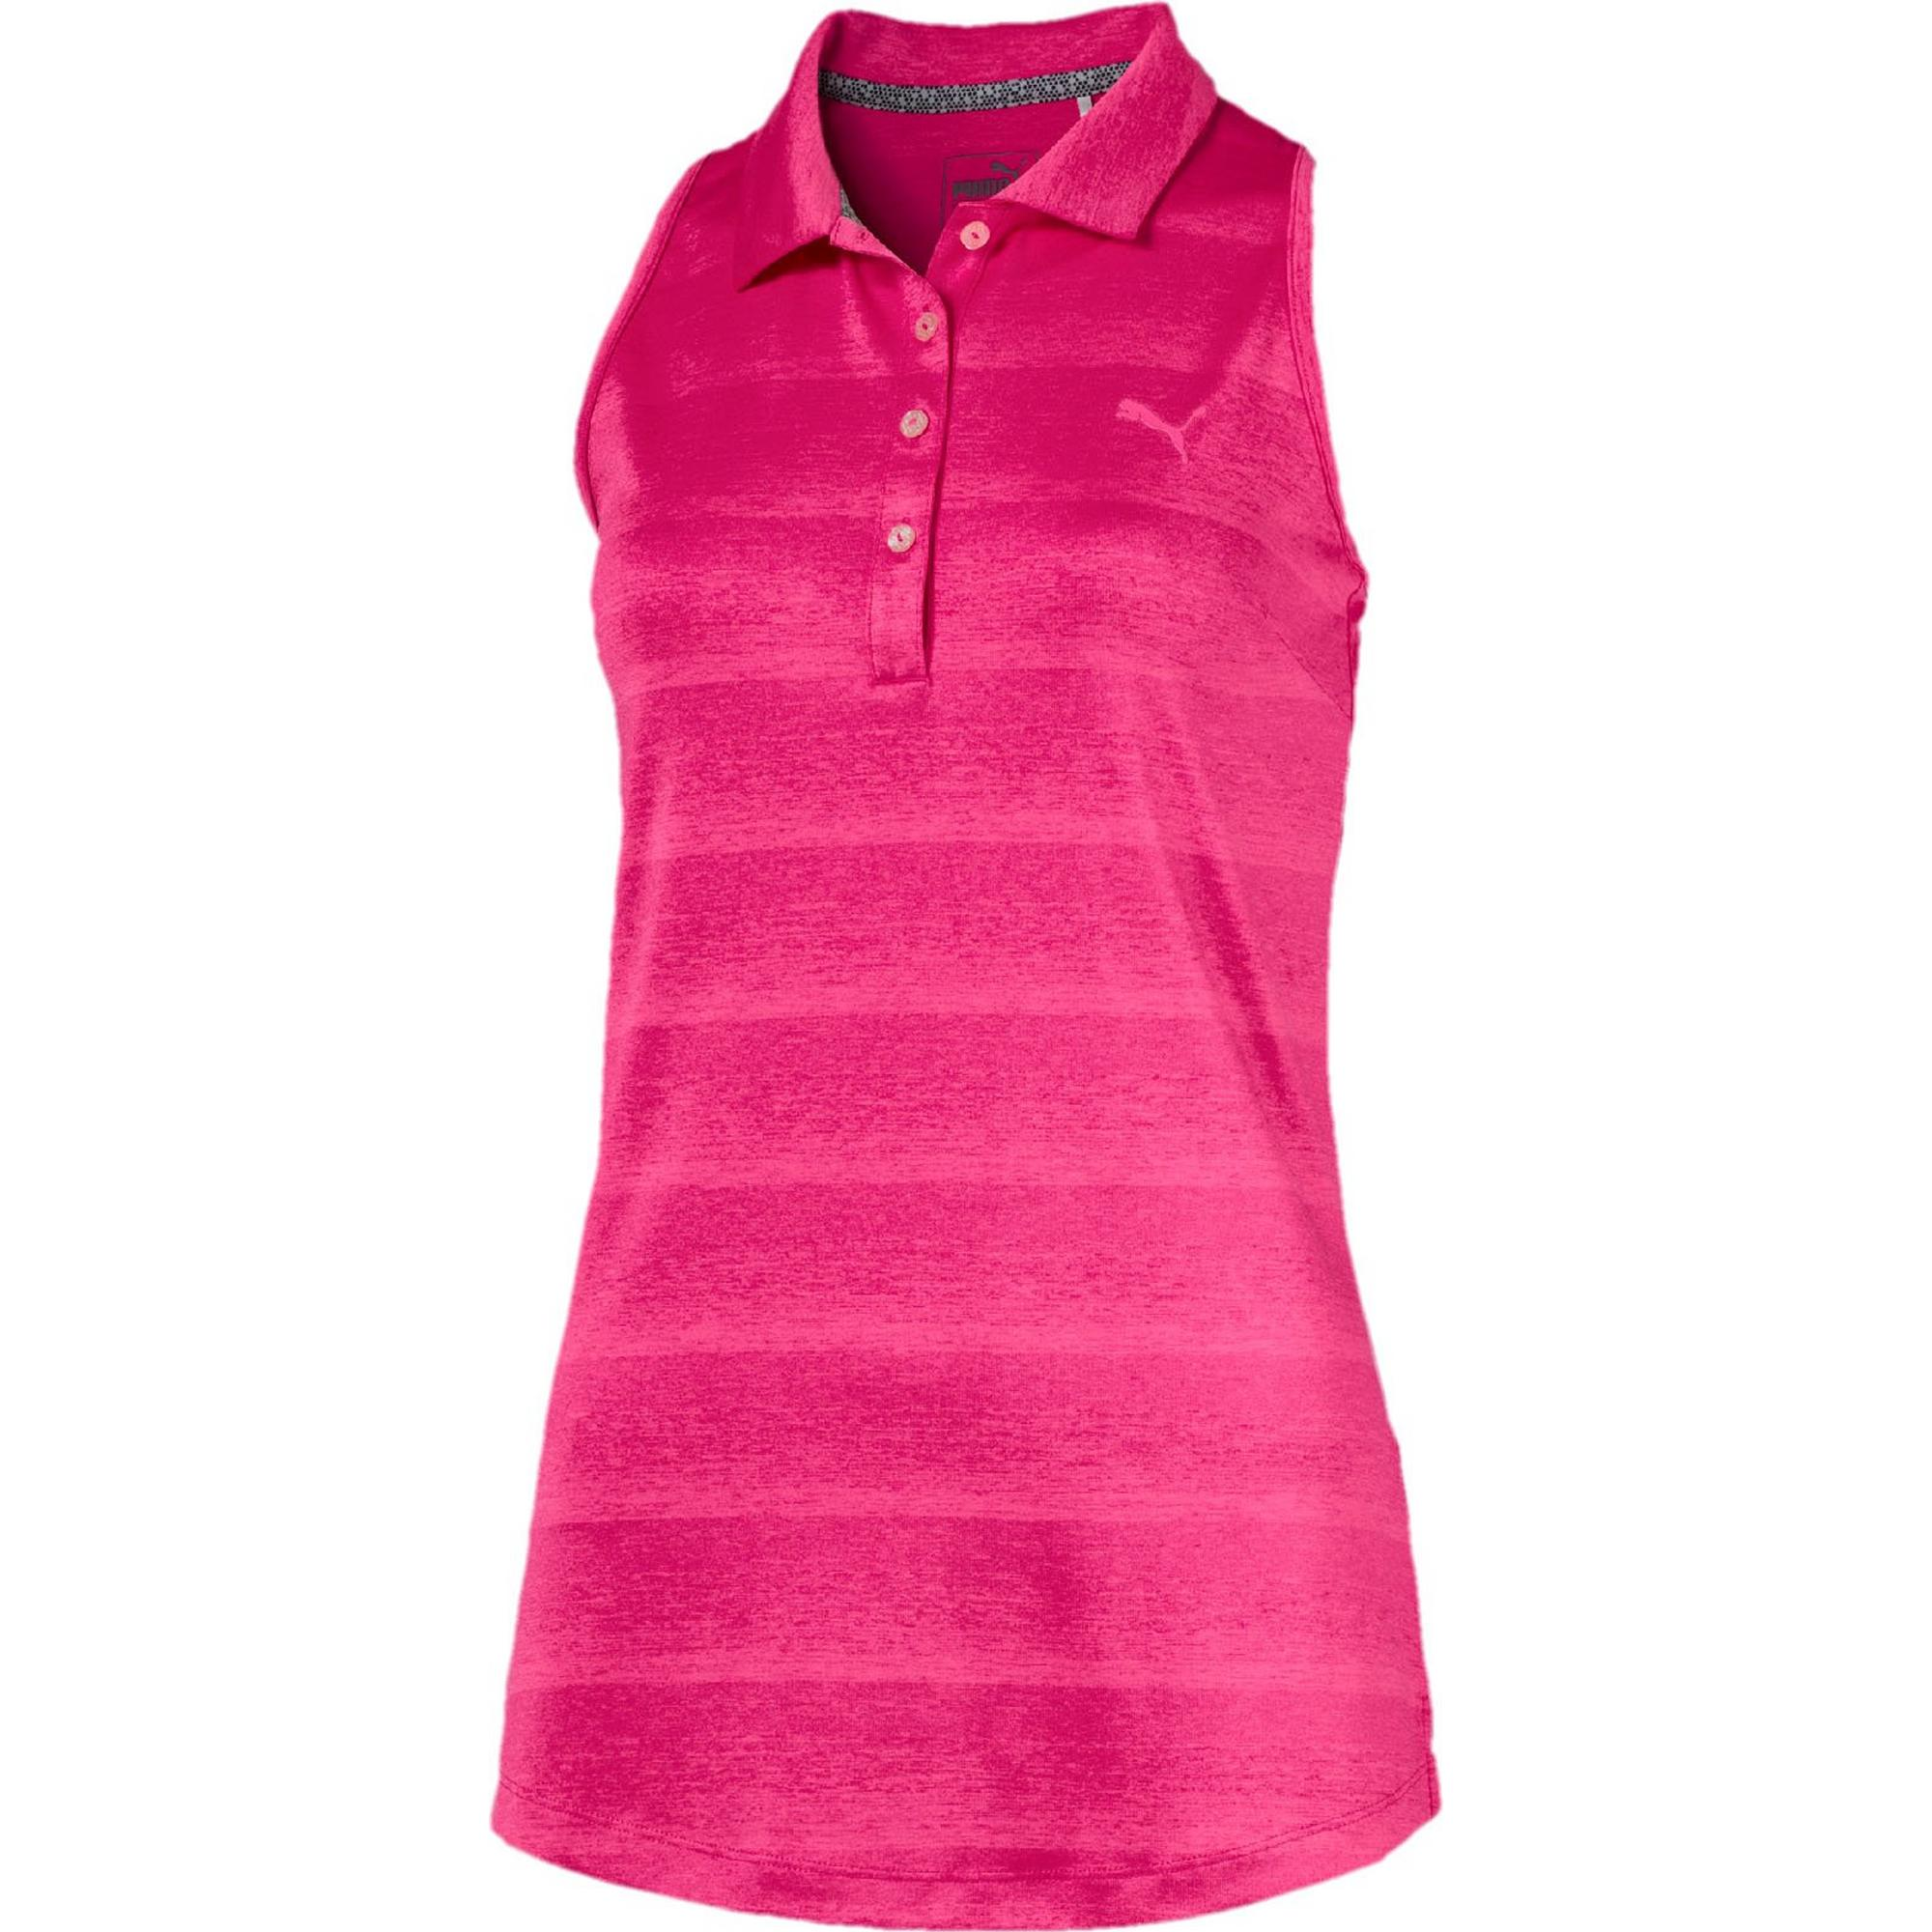 Women's Racerback Sleeveless Polo